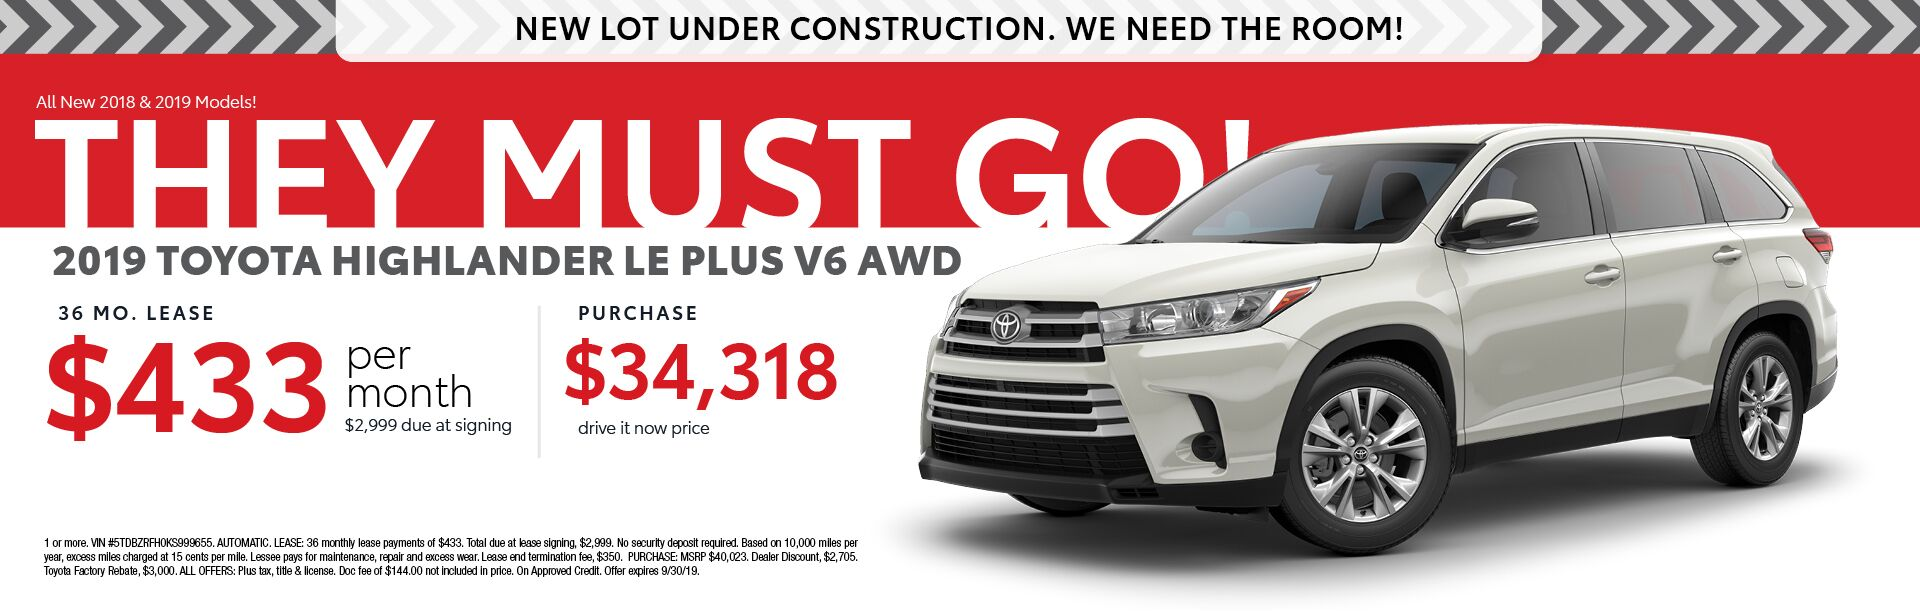 2019 Toyota Highlander LE - Lease for $433 per month for 36 months with $2,999 due at signing - Purchase for $33,966